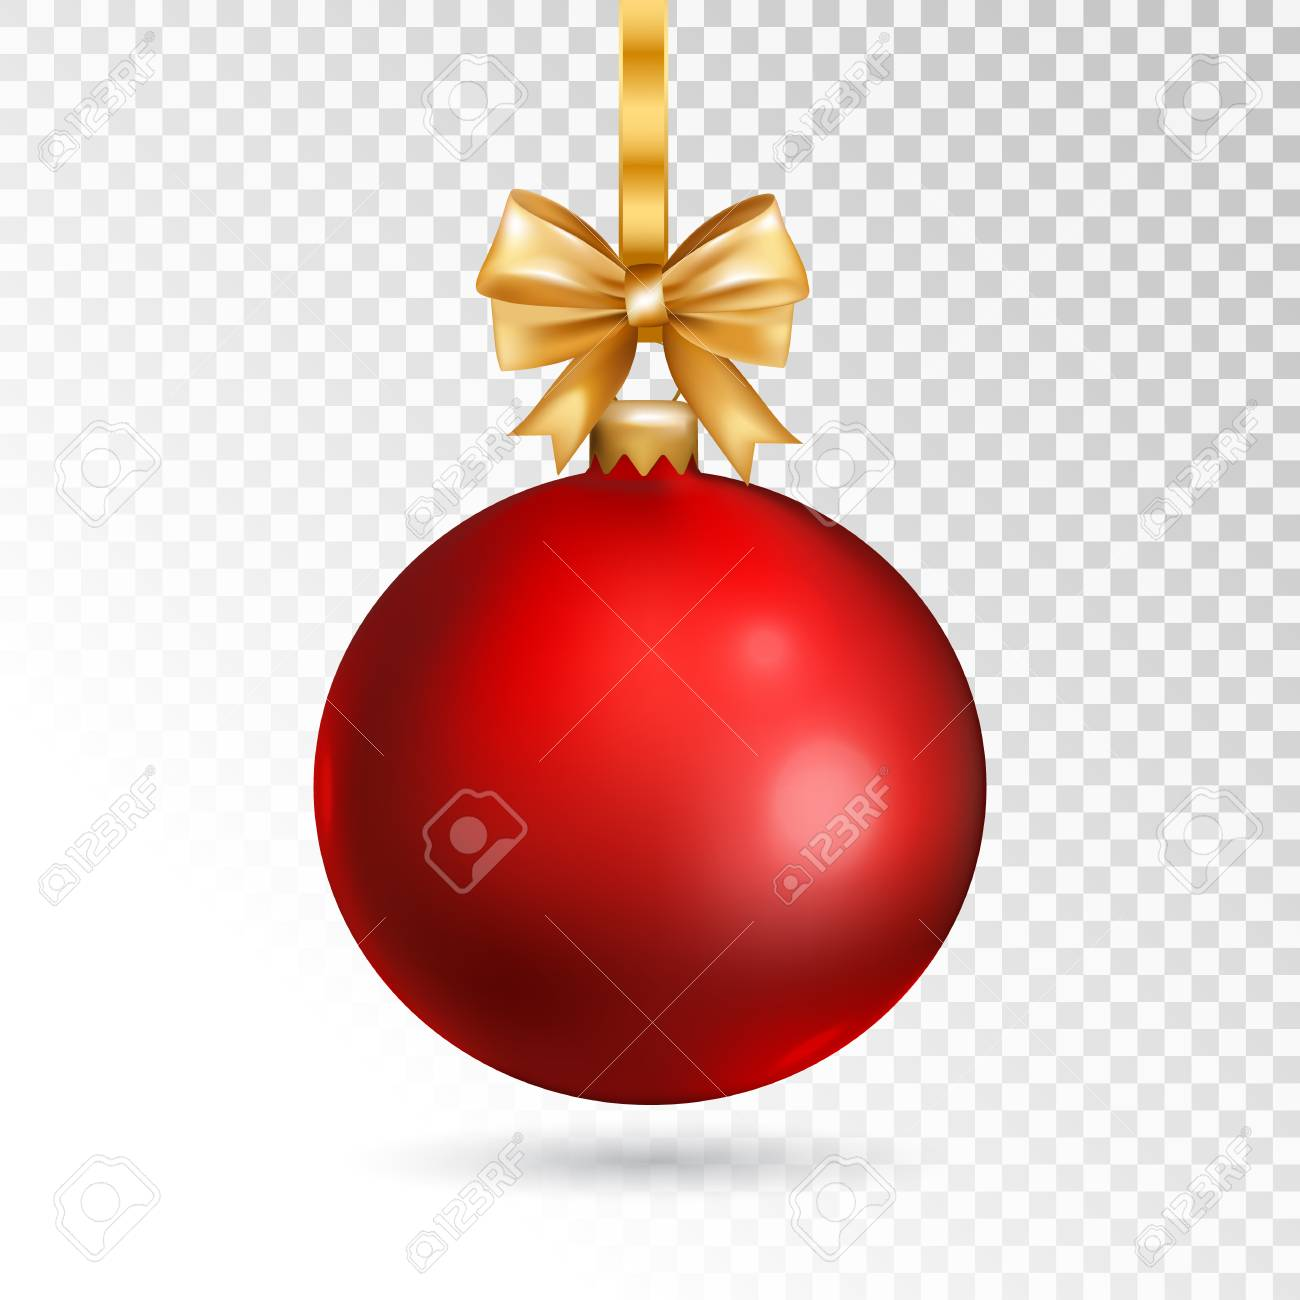 Christmas Transparent Background.Red Christmas Ball With Gold Bow Isolated On Transparent Background